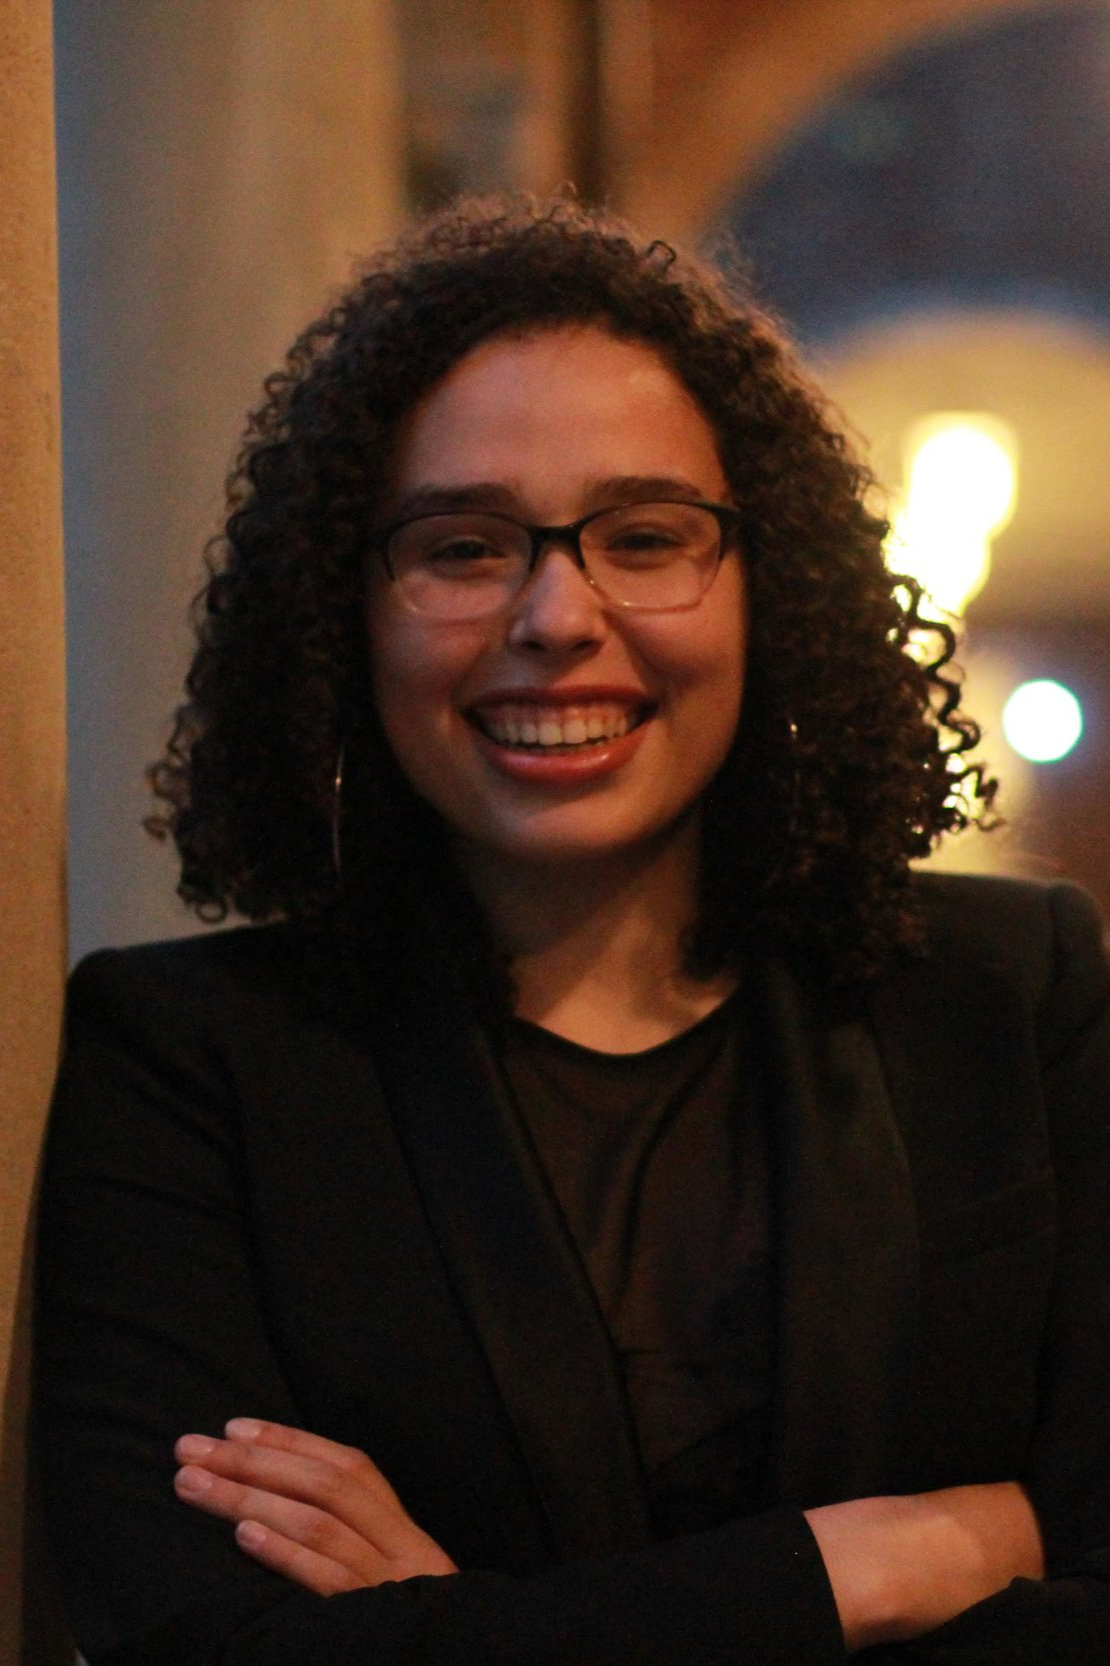 CASSANDRA CRONIN - Fall Policy Fellow